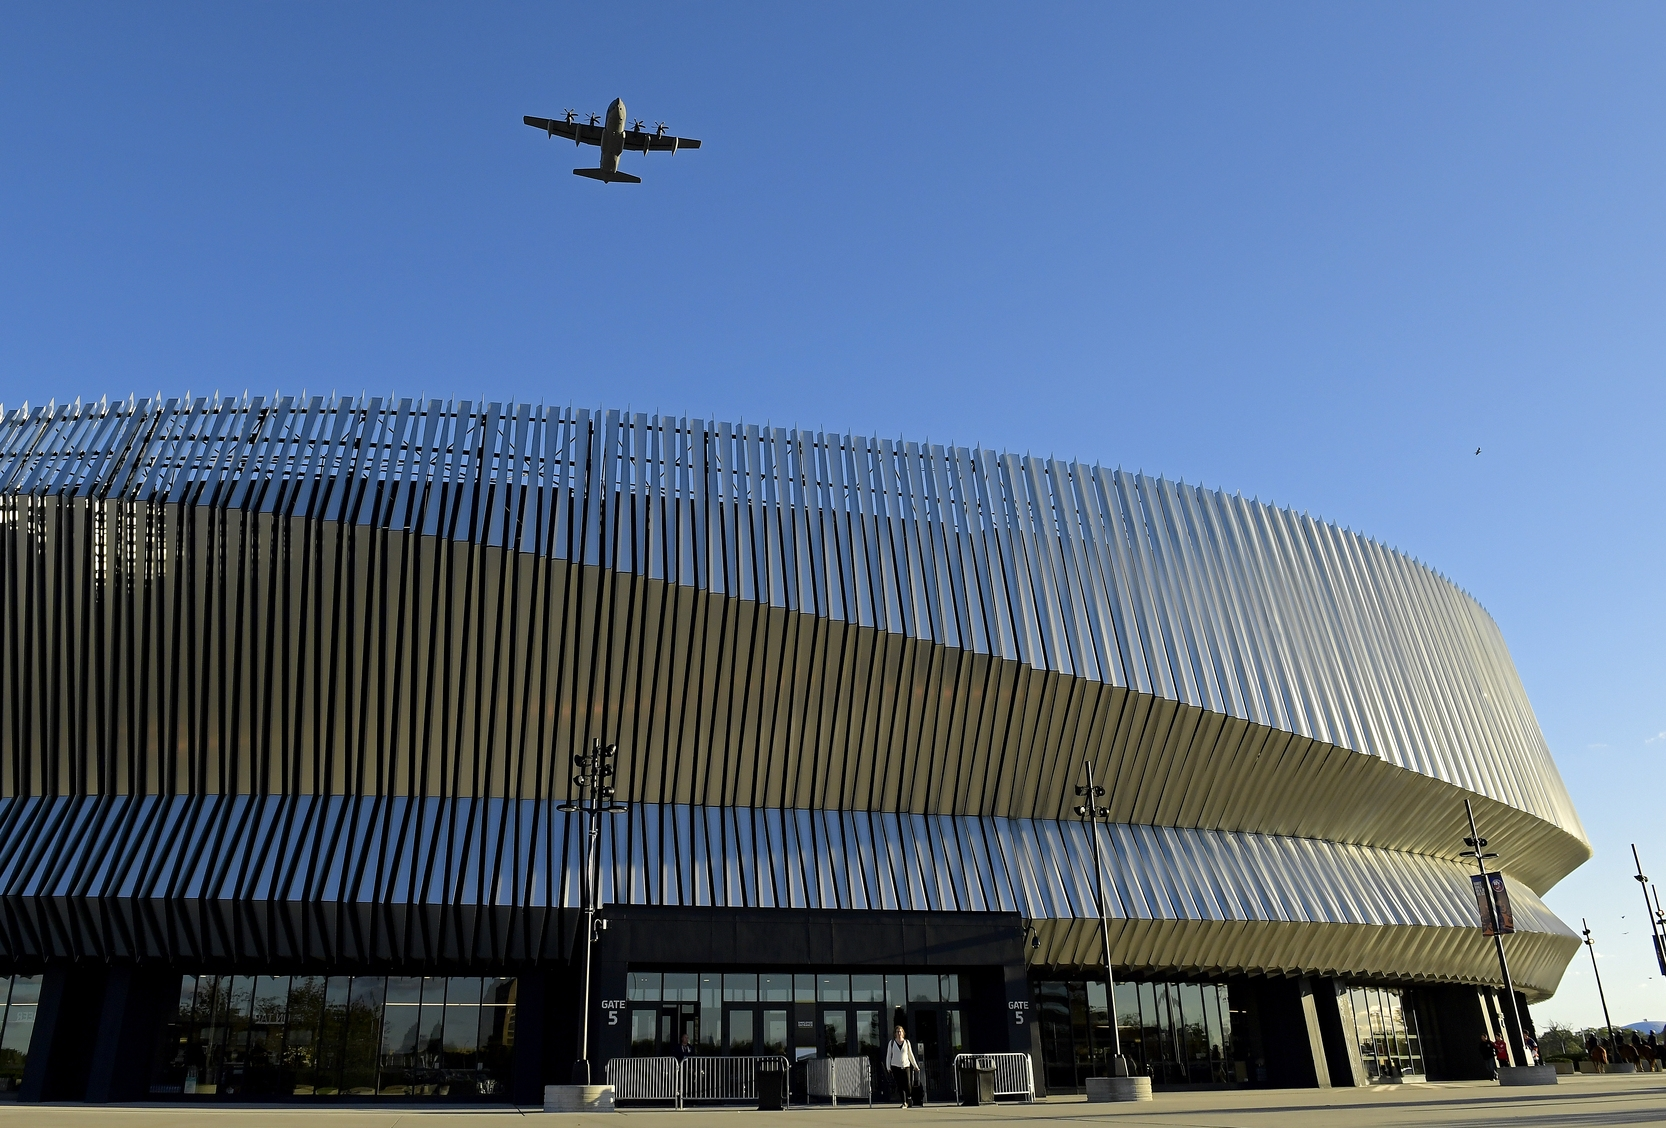 A military aircraft, based out of the Westhampton Beach 106th Rescue Wing, flies over Nassau Coliseum prior to an NHL hockey game between the New York Islanders and the Washington Capitals, Friday, Oct. 4, 2019, in Uniondale, N.Y. (AP Photo/Steven Ryan)